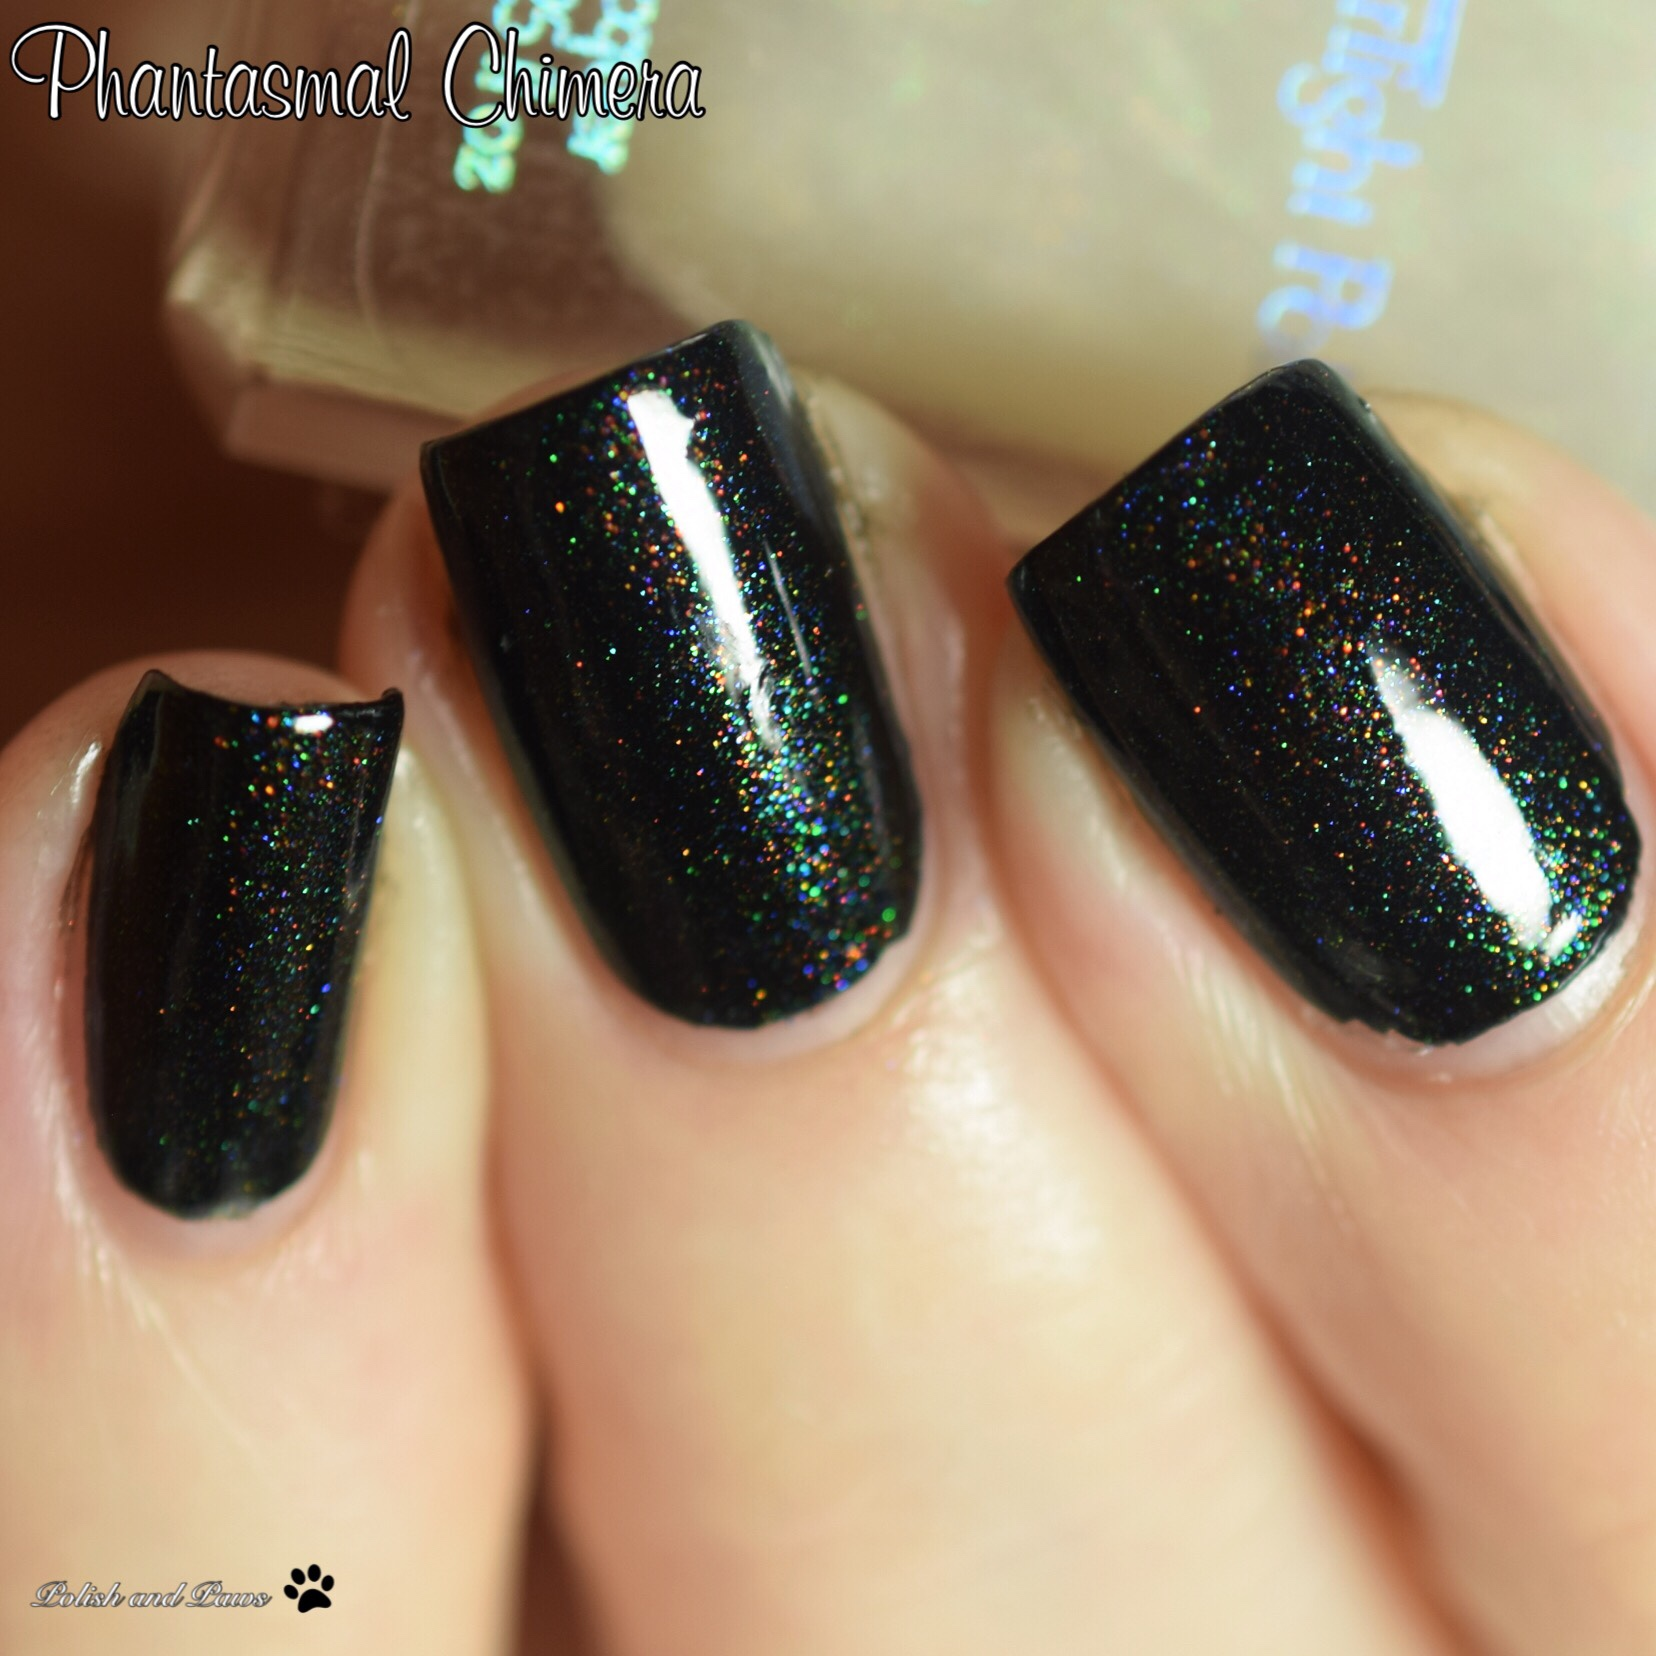 Starlight Polish Phantasmal Chimera